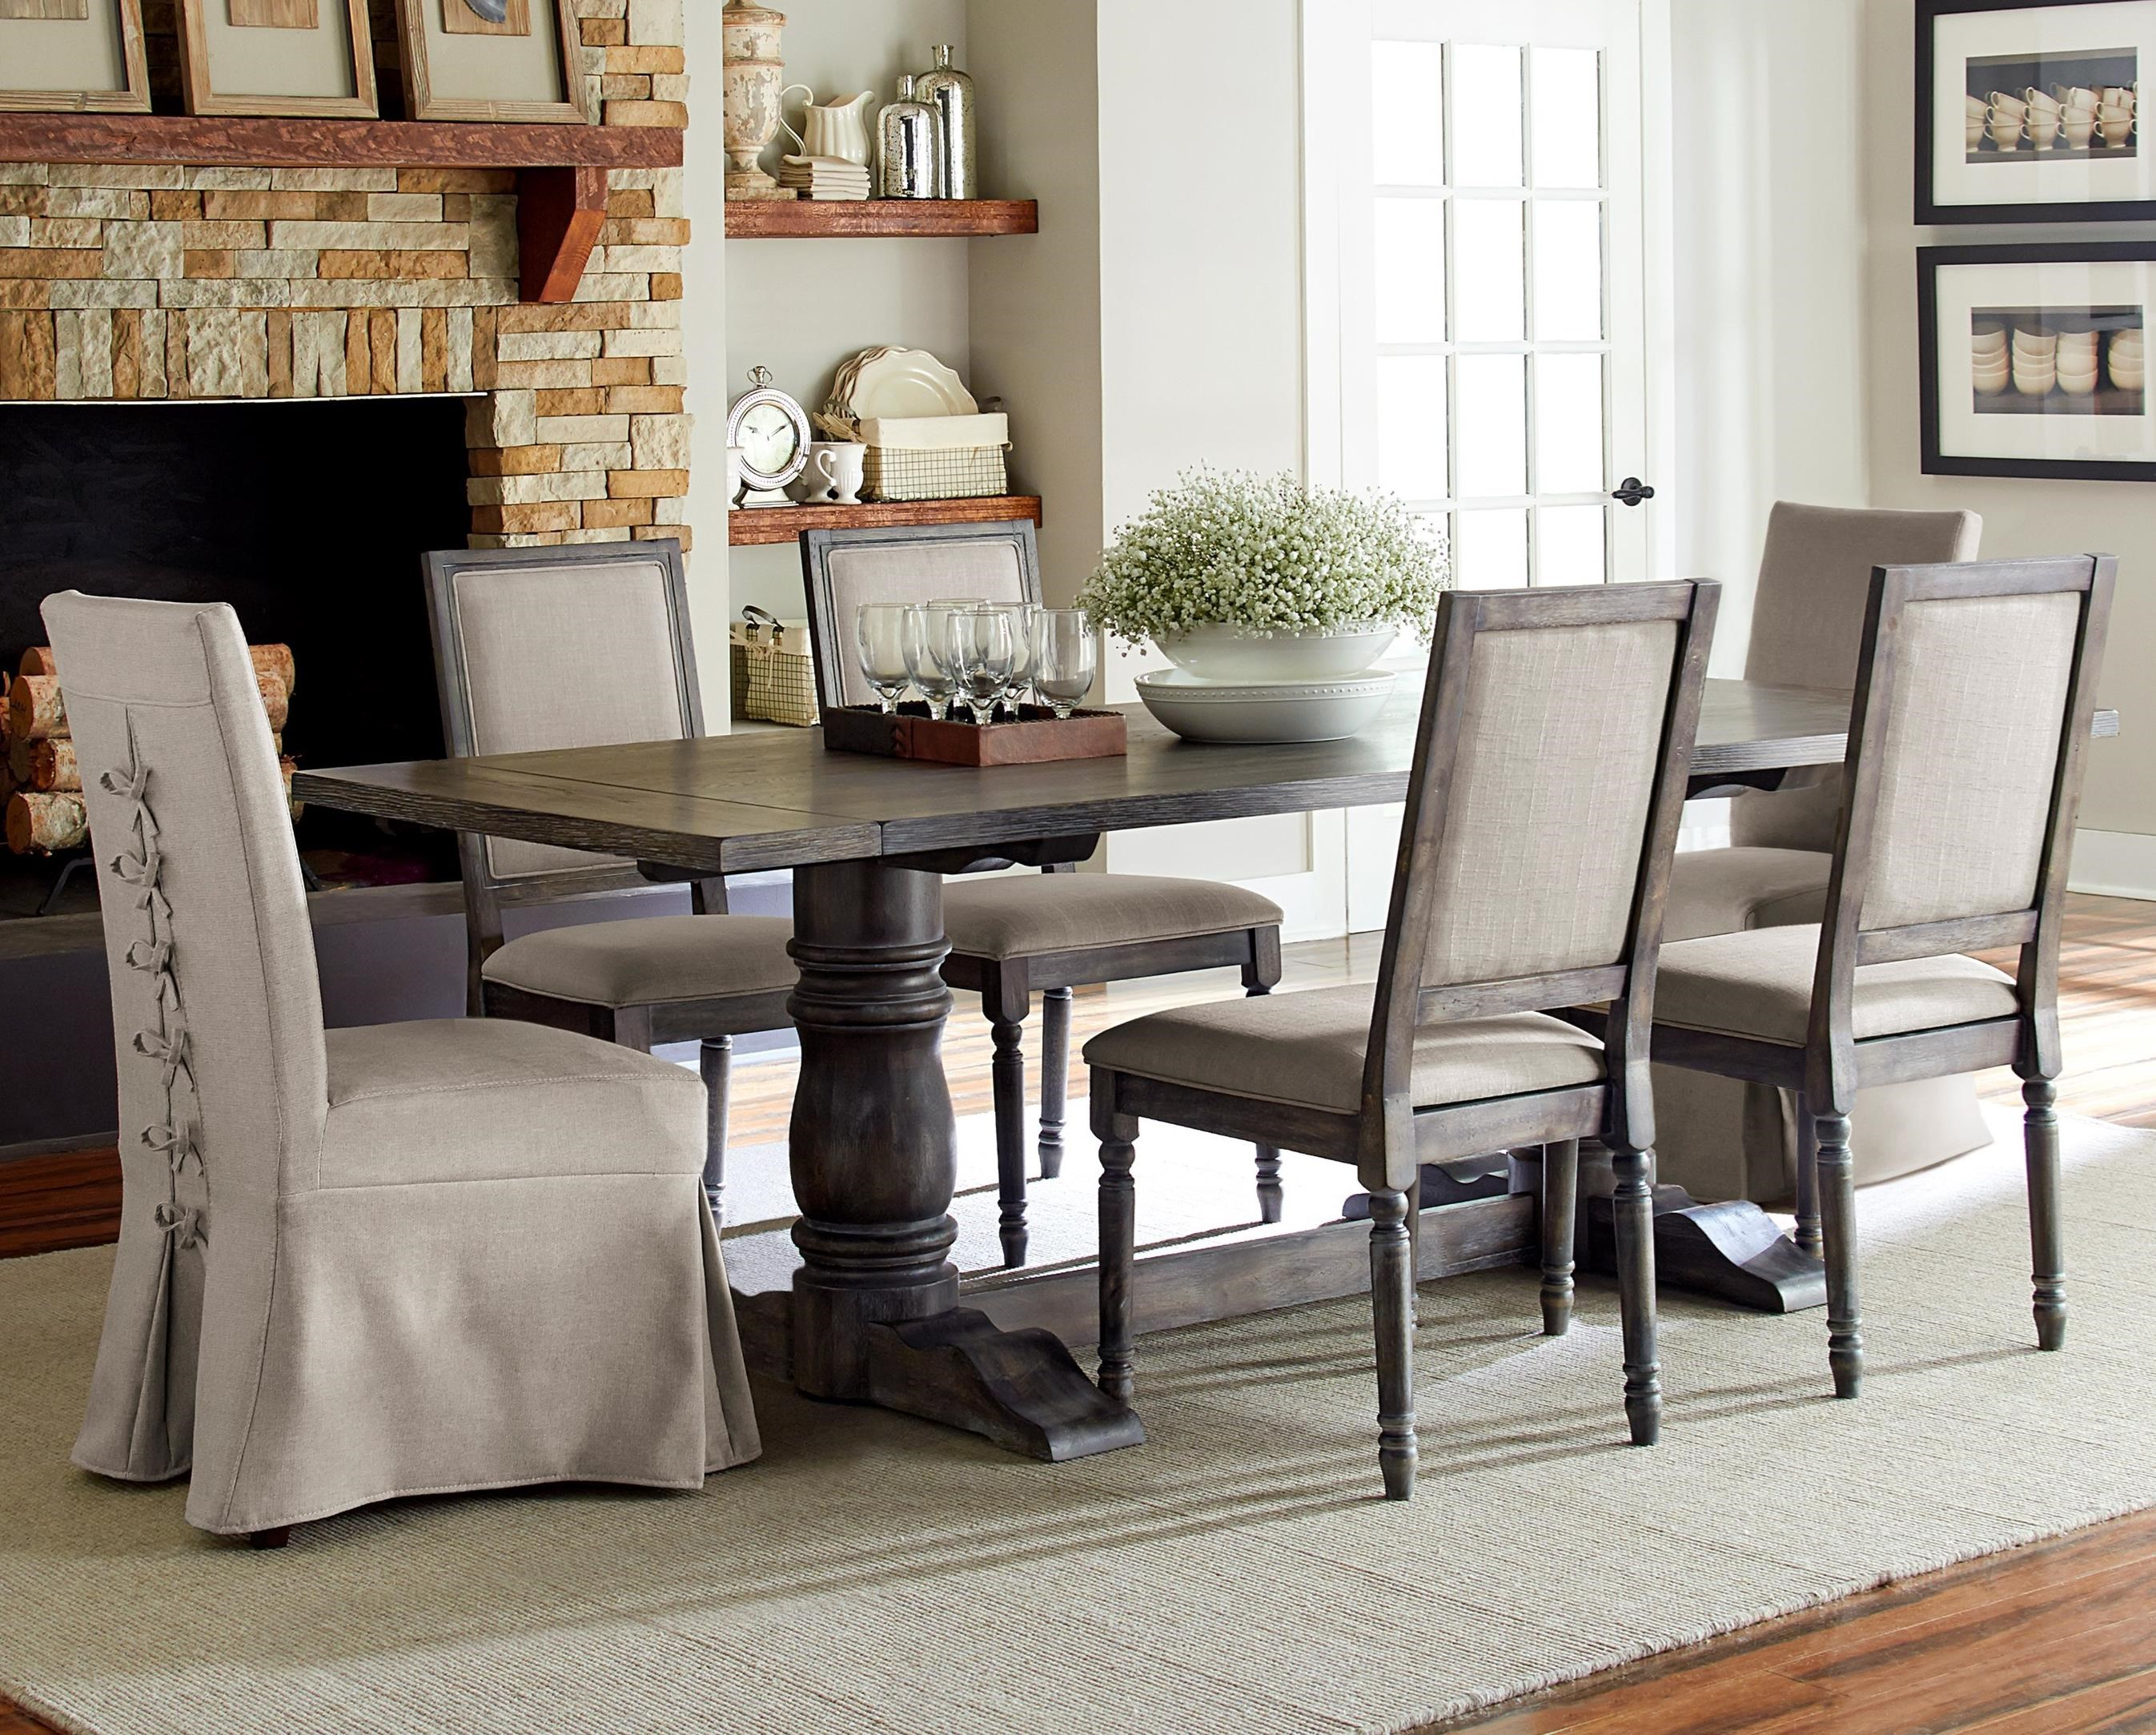 Muses 7-Piece Rectangular Dining Table Set by Progressive Furniture at Carolina Direct